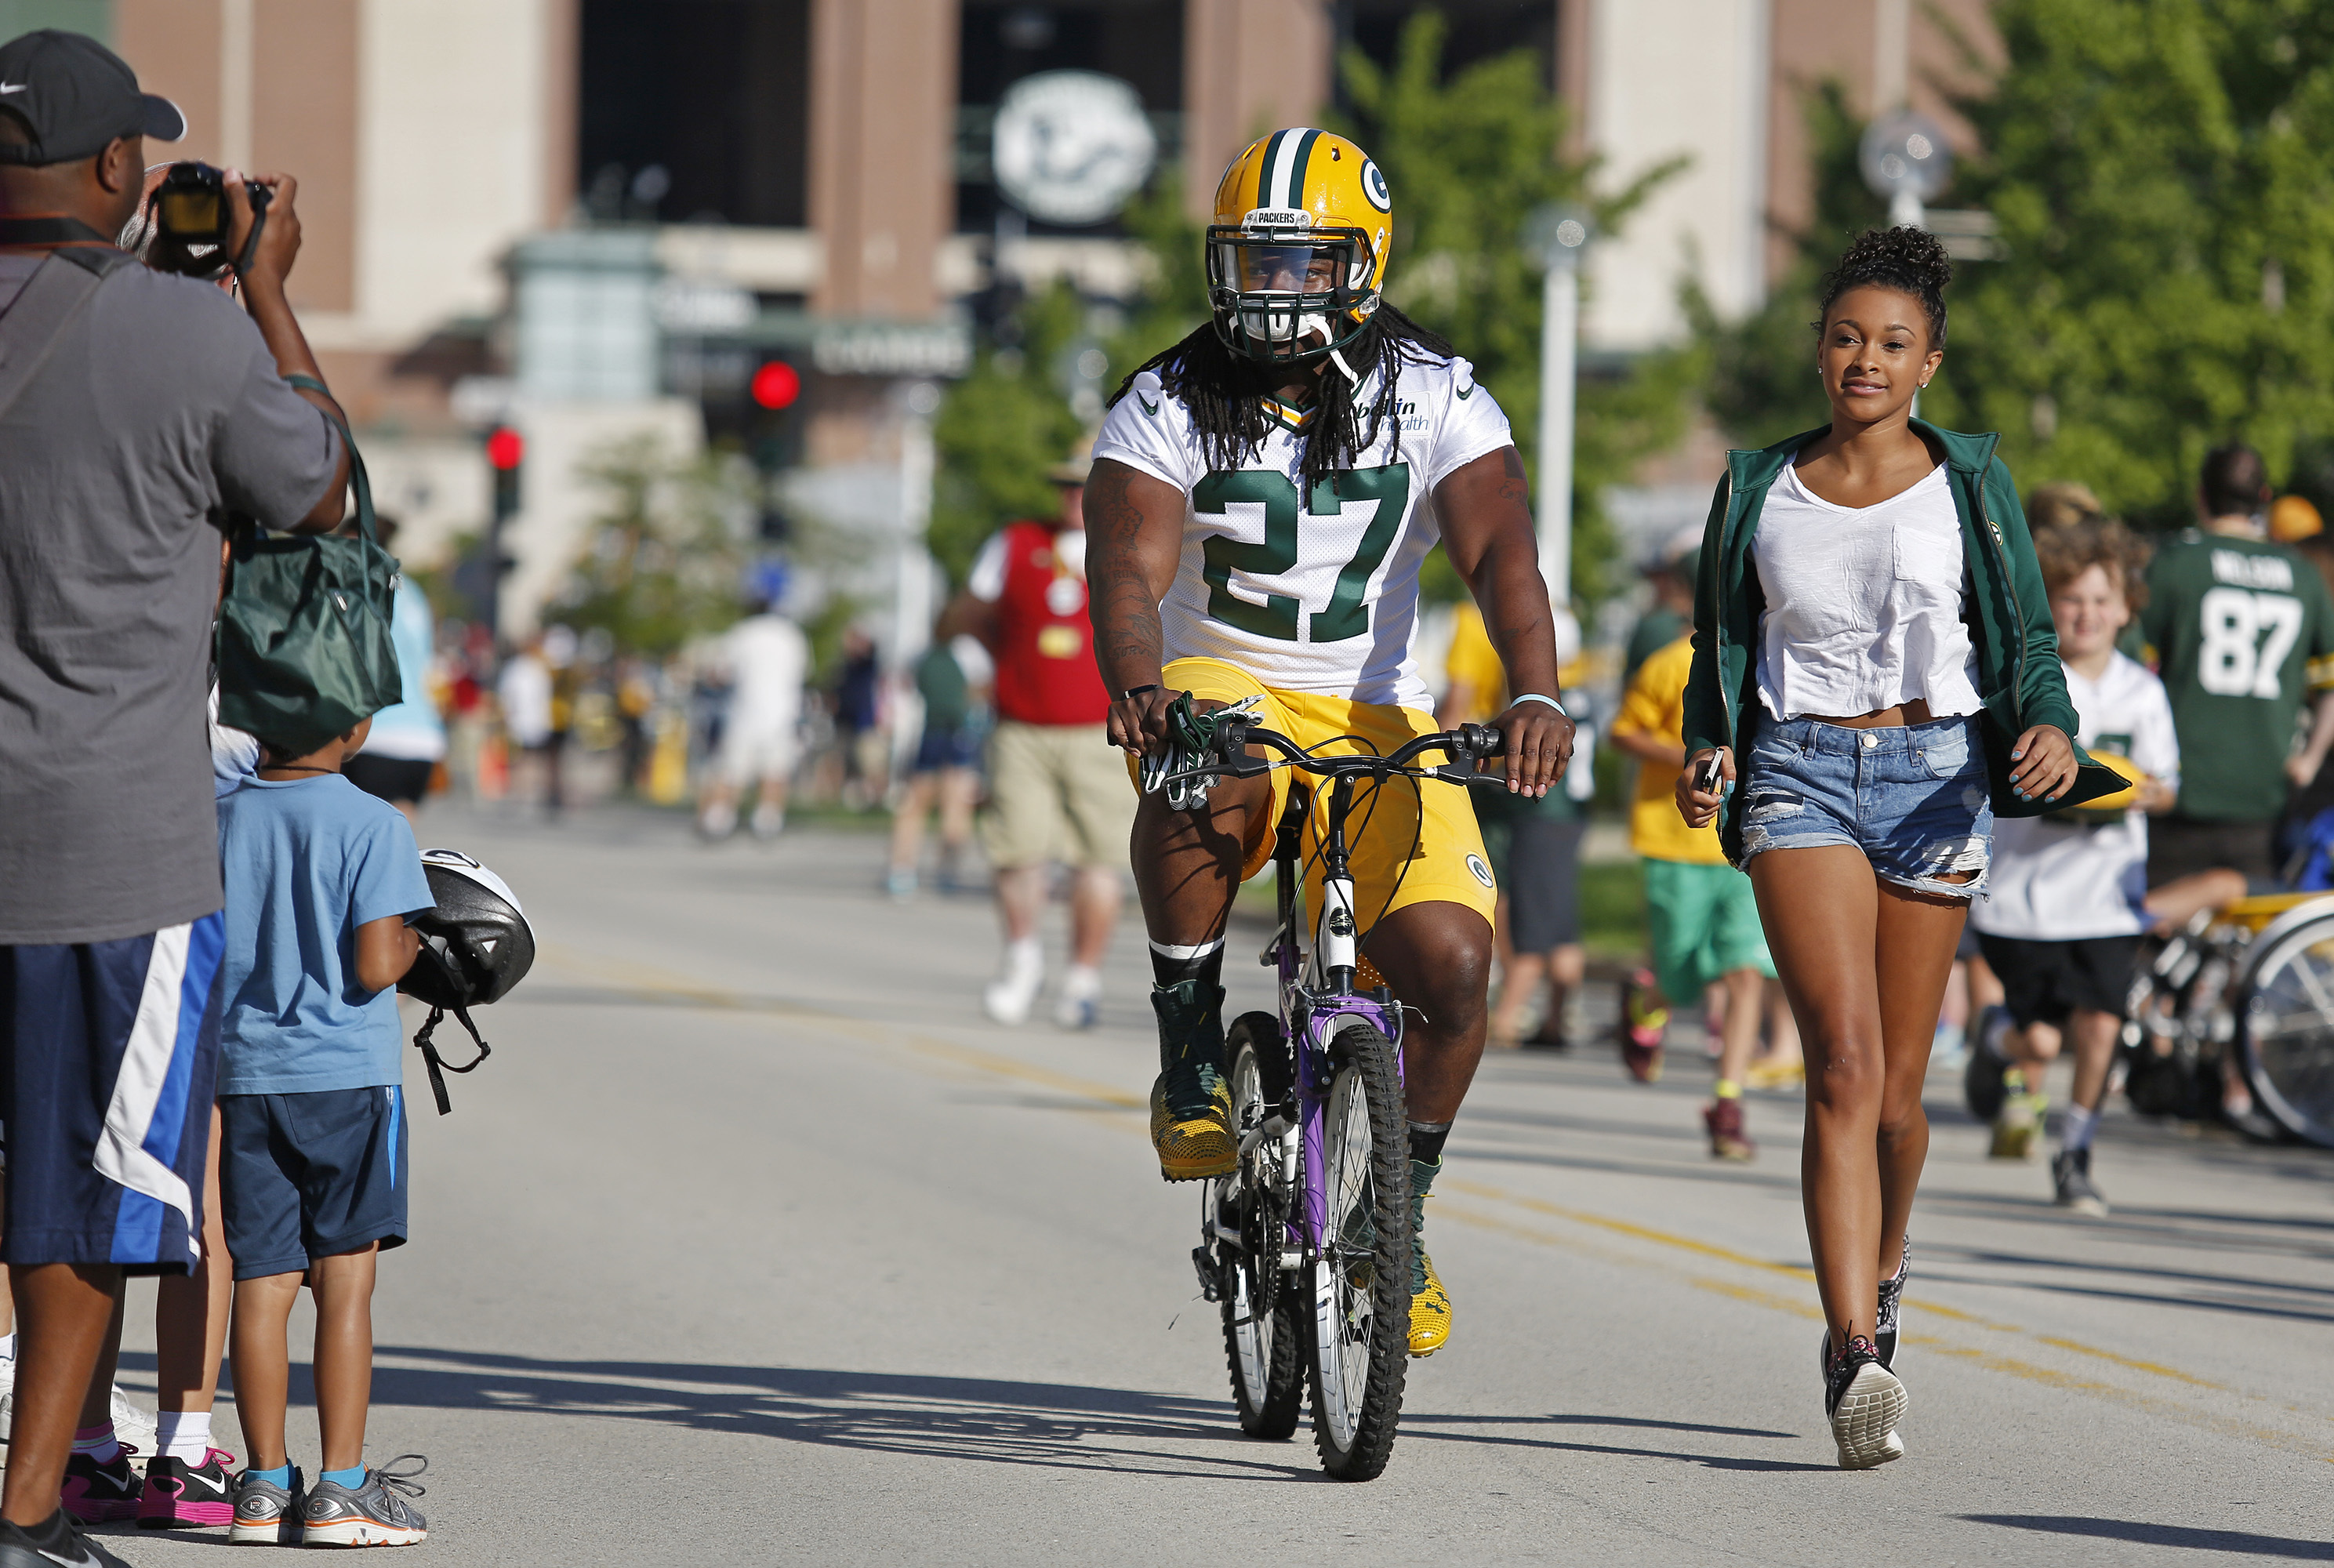 Green Bay Packers running back Eddie Lacy rides a bike to NFL football training camp, Tuesday, July 26, 2016, in Green Bay, Wis. (AP Photo/Matt Ludtke)